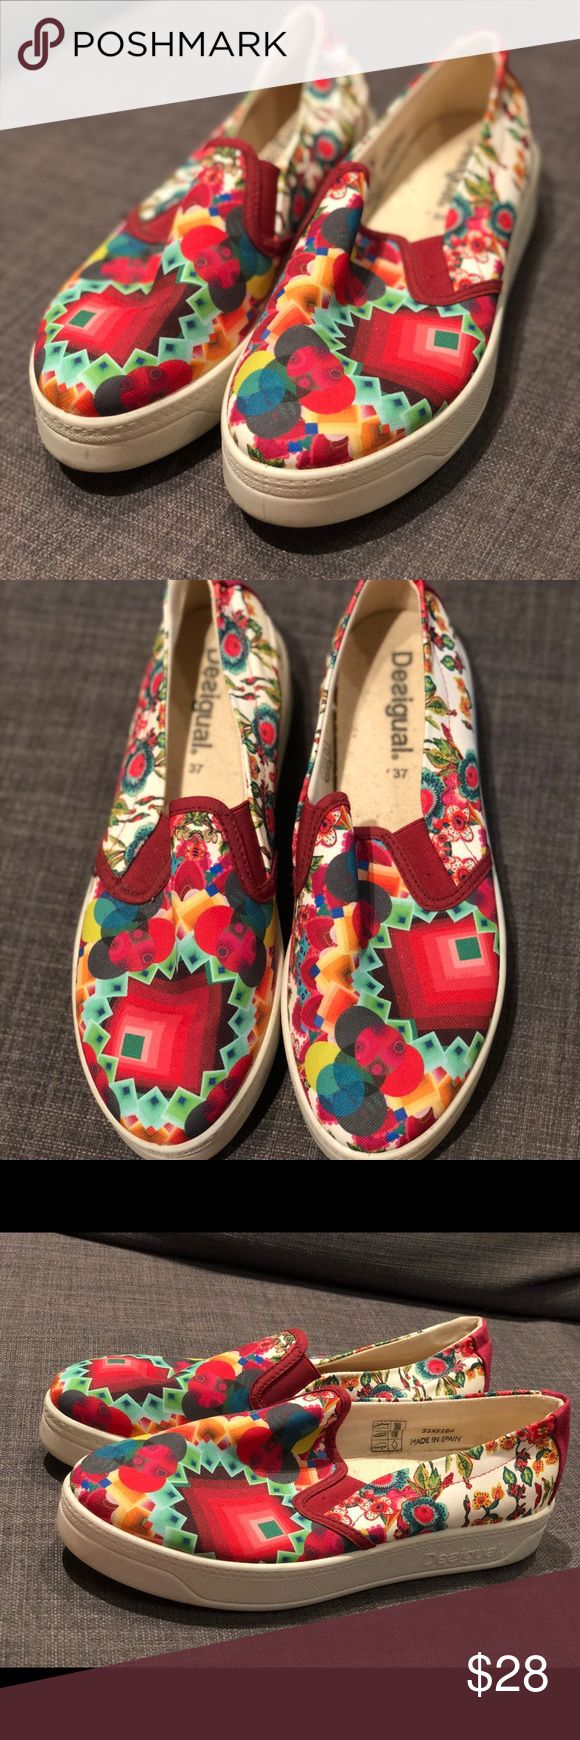 Desigual Canvas Shoes 6.5 NWT BRAND NEW, with tags, colorful & cute Desigual canvas slides. Size 6.5 USA, originally retails for $79 Desigual Shoes Sneakers